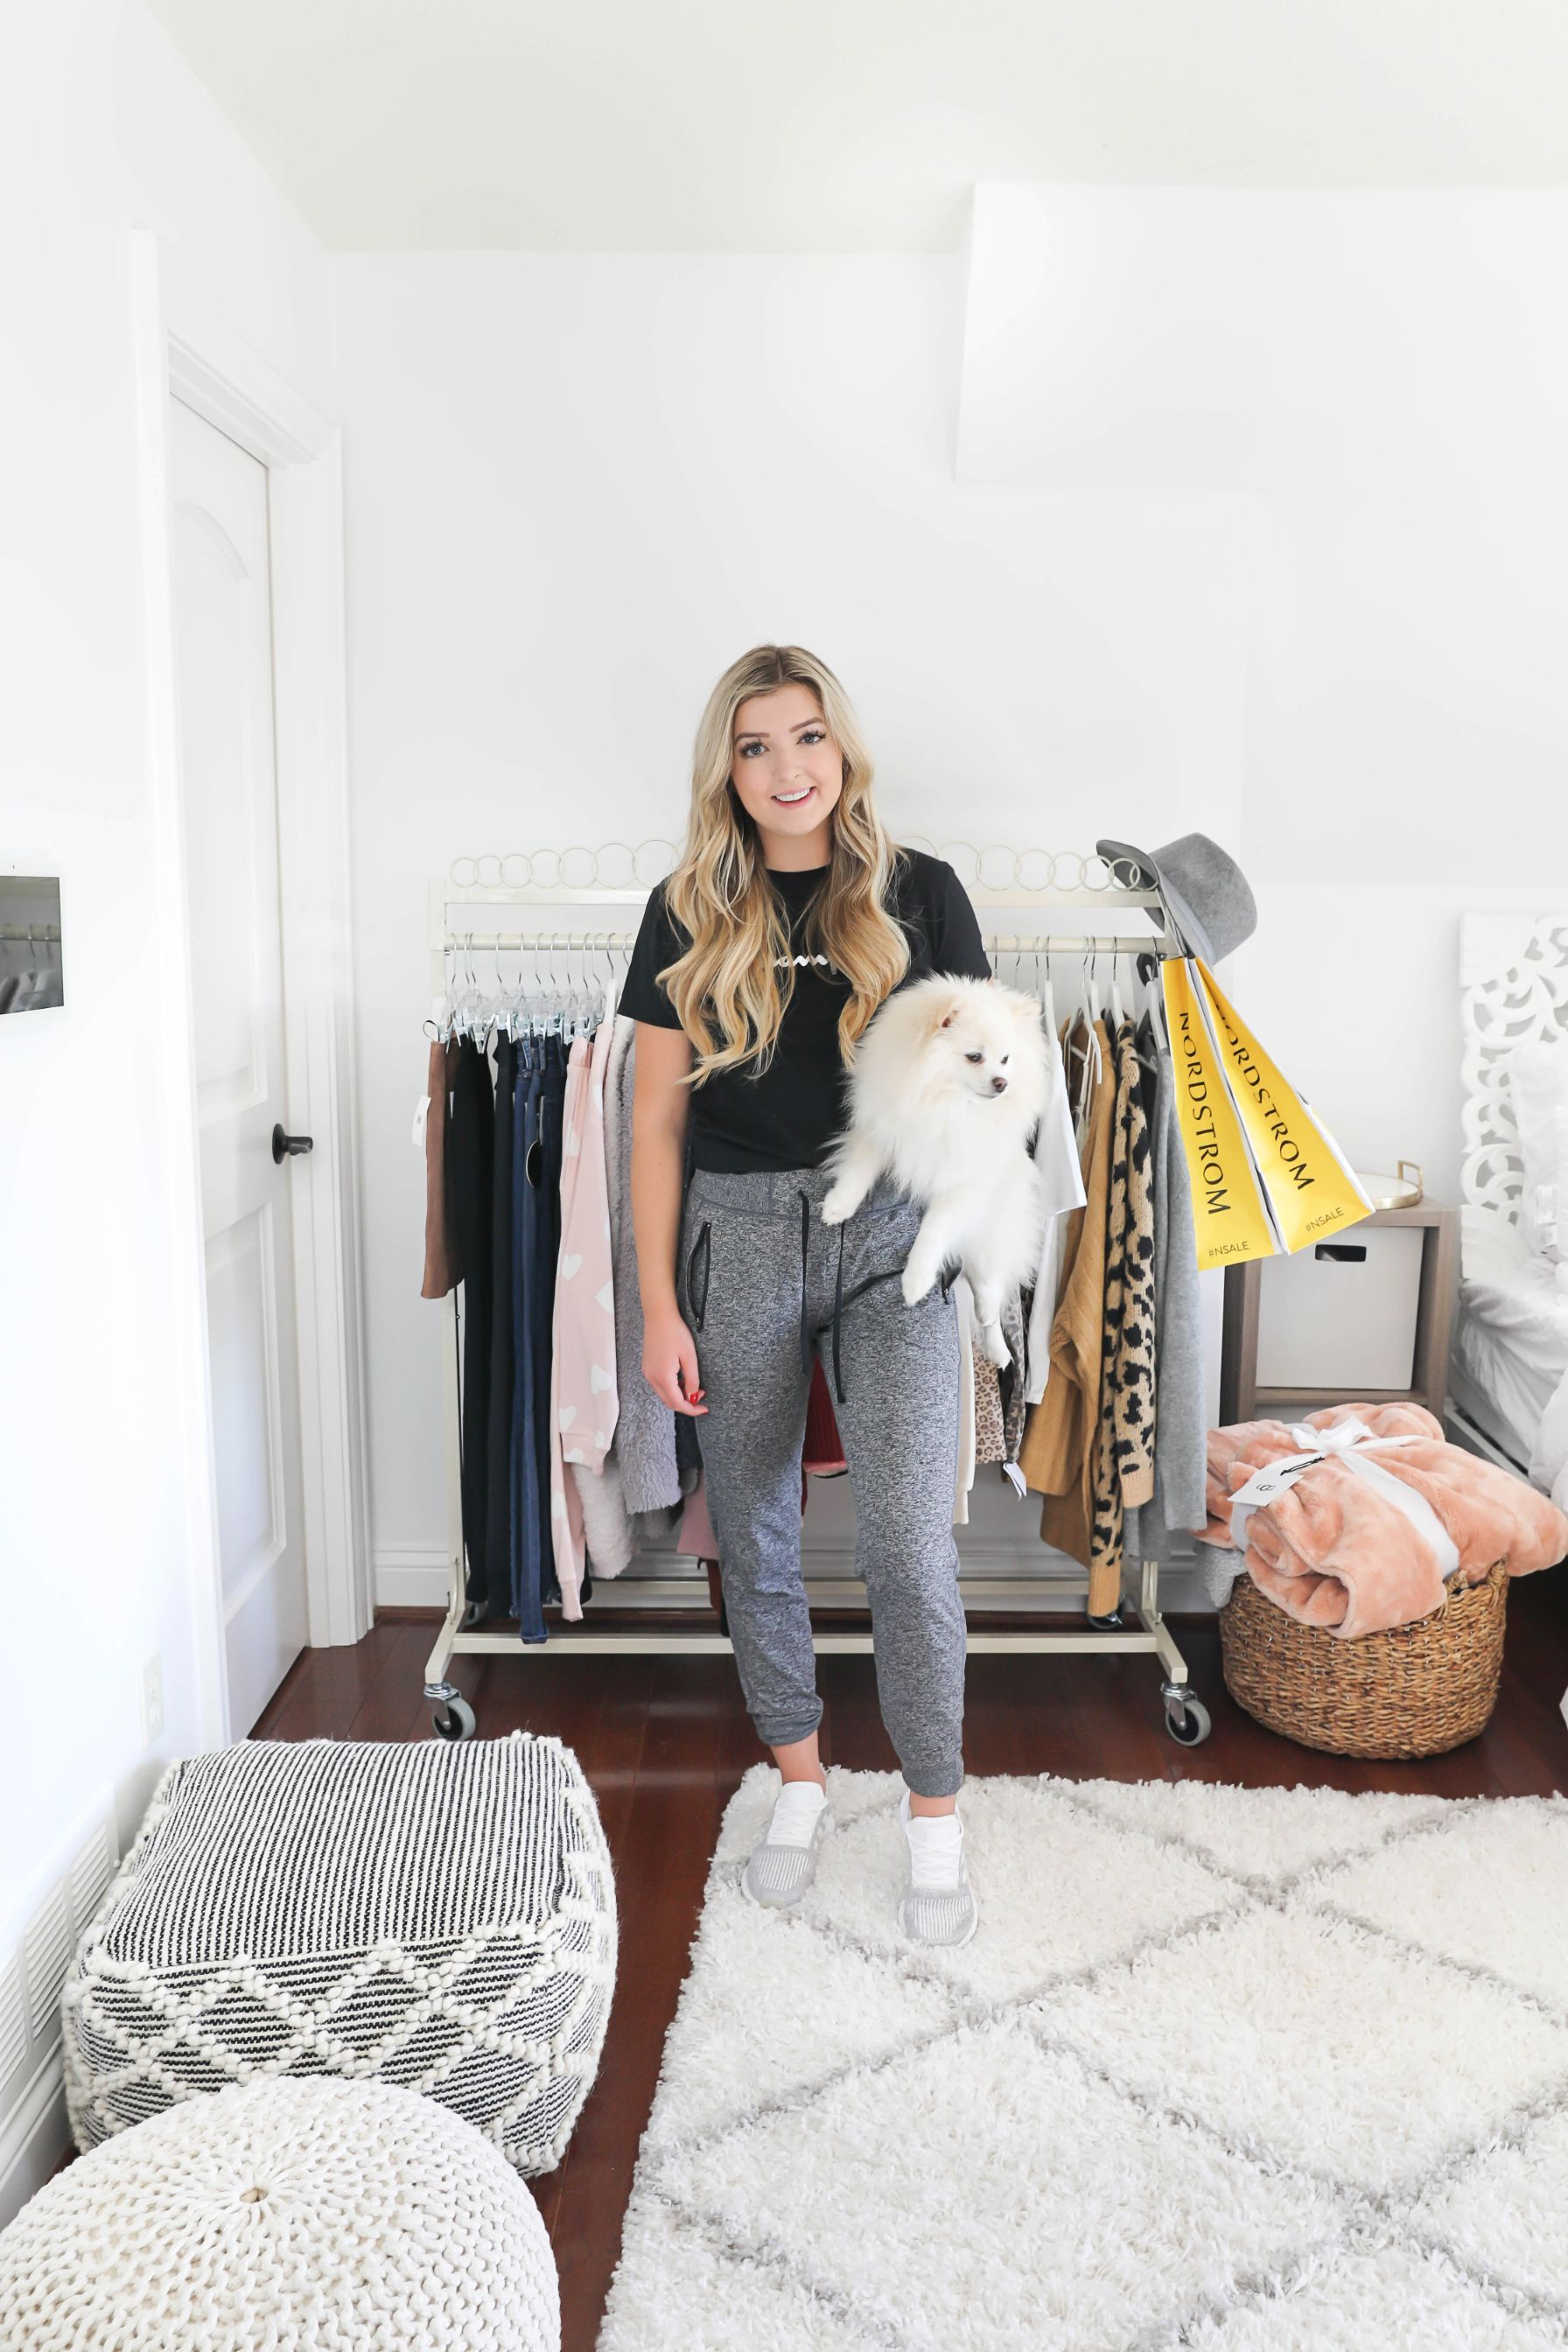 Nordstrom anniversary sale try on haul 2019 nsale sweaters pullovers shop with me vlog blogpost fashion blogger daily dose of charm lauren lindmark